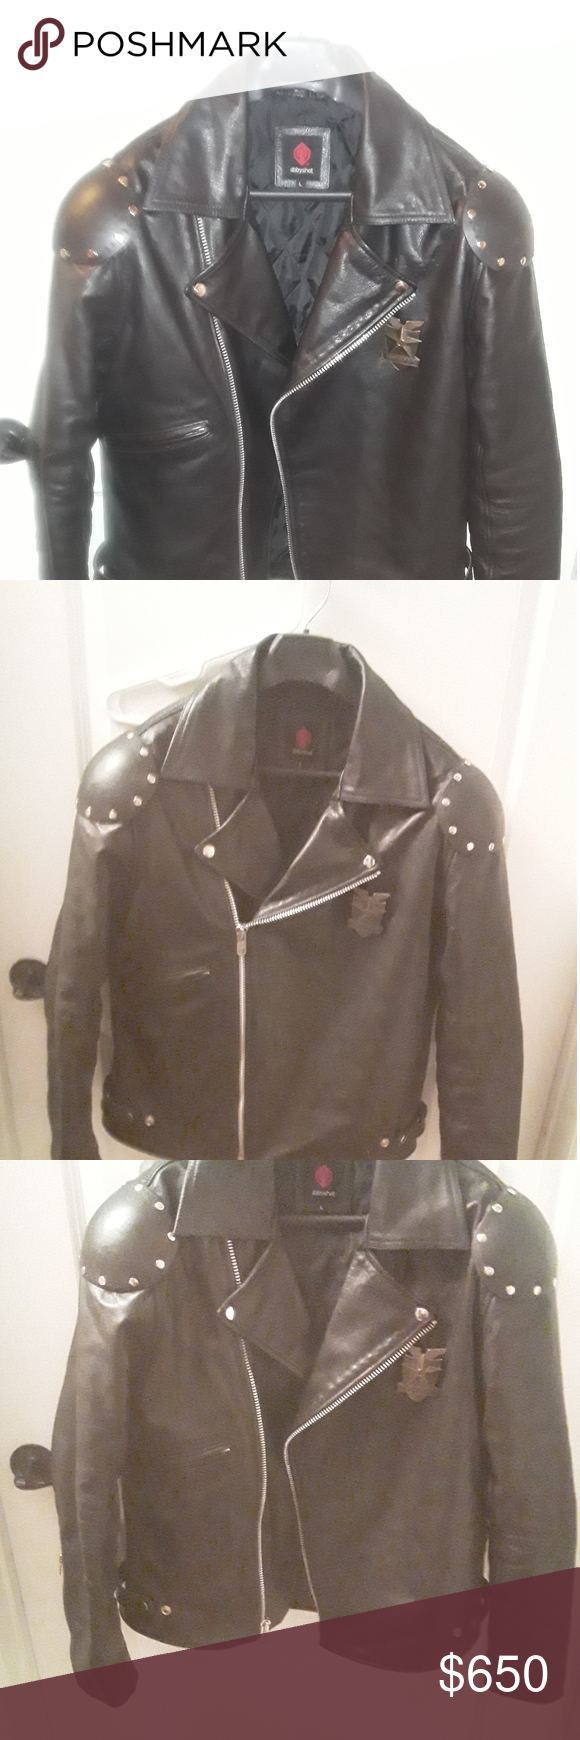 Abbyshot Mad Max Jacket Very Rare The Real Thing Abbyshot Made This Stitch For Stitch Movie Correct Replica Jacket Unt Leather Jacket Mad Max Jacket Jackets [ 1740 x 580 Pixel ]